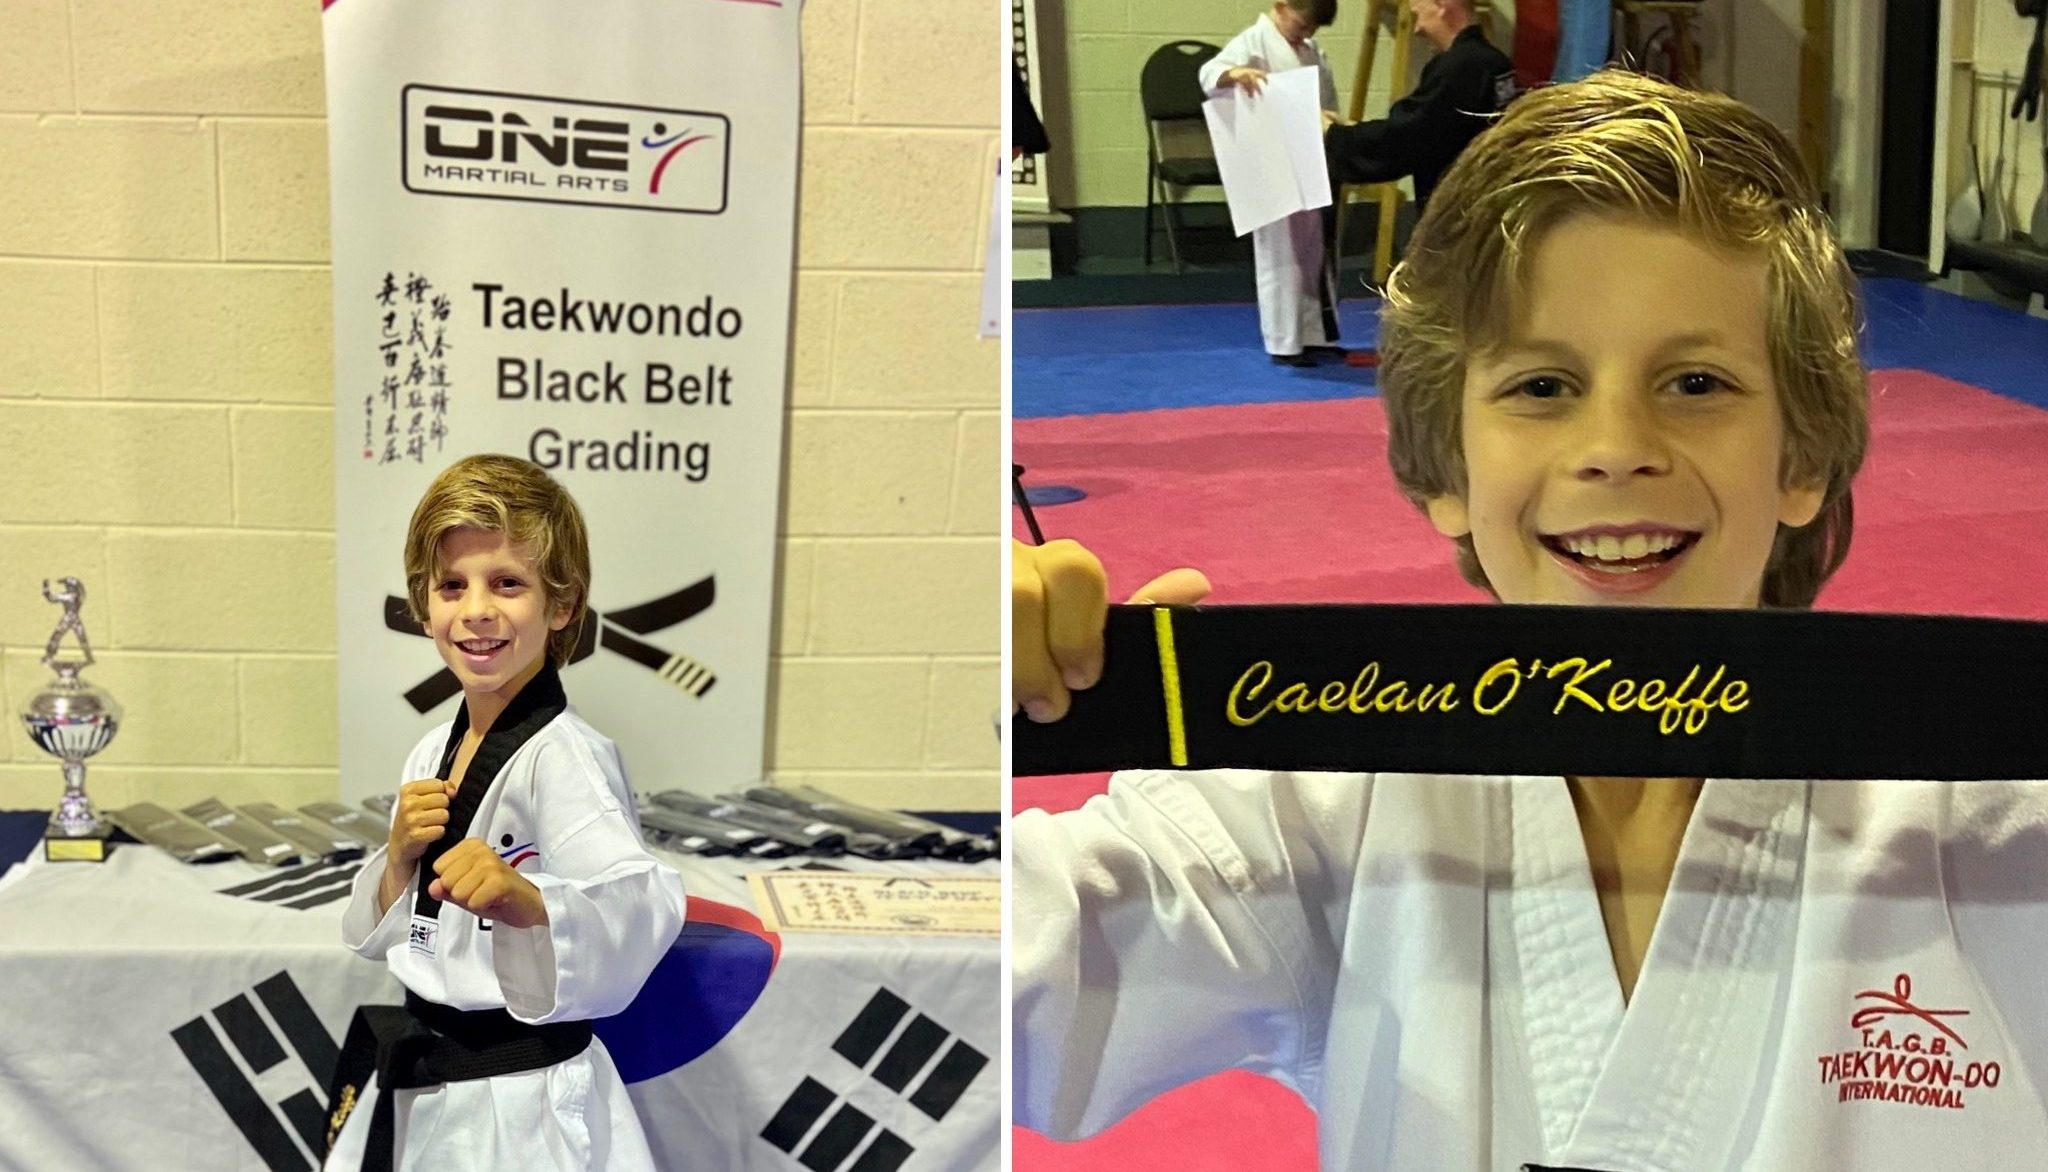 Caelan awarded Black Belt in Taekwando thumbnail image